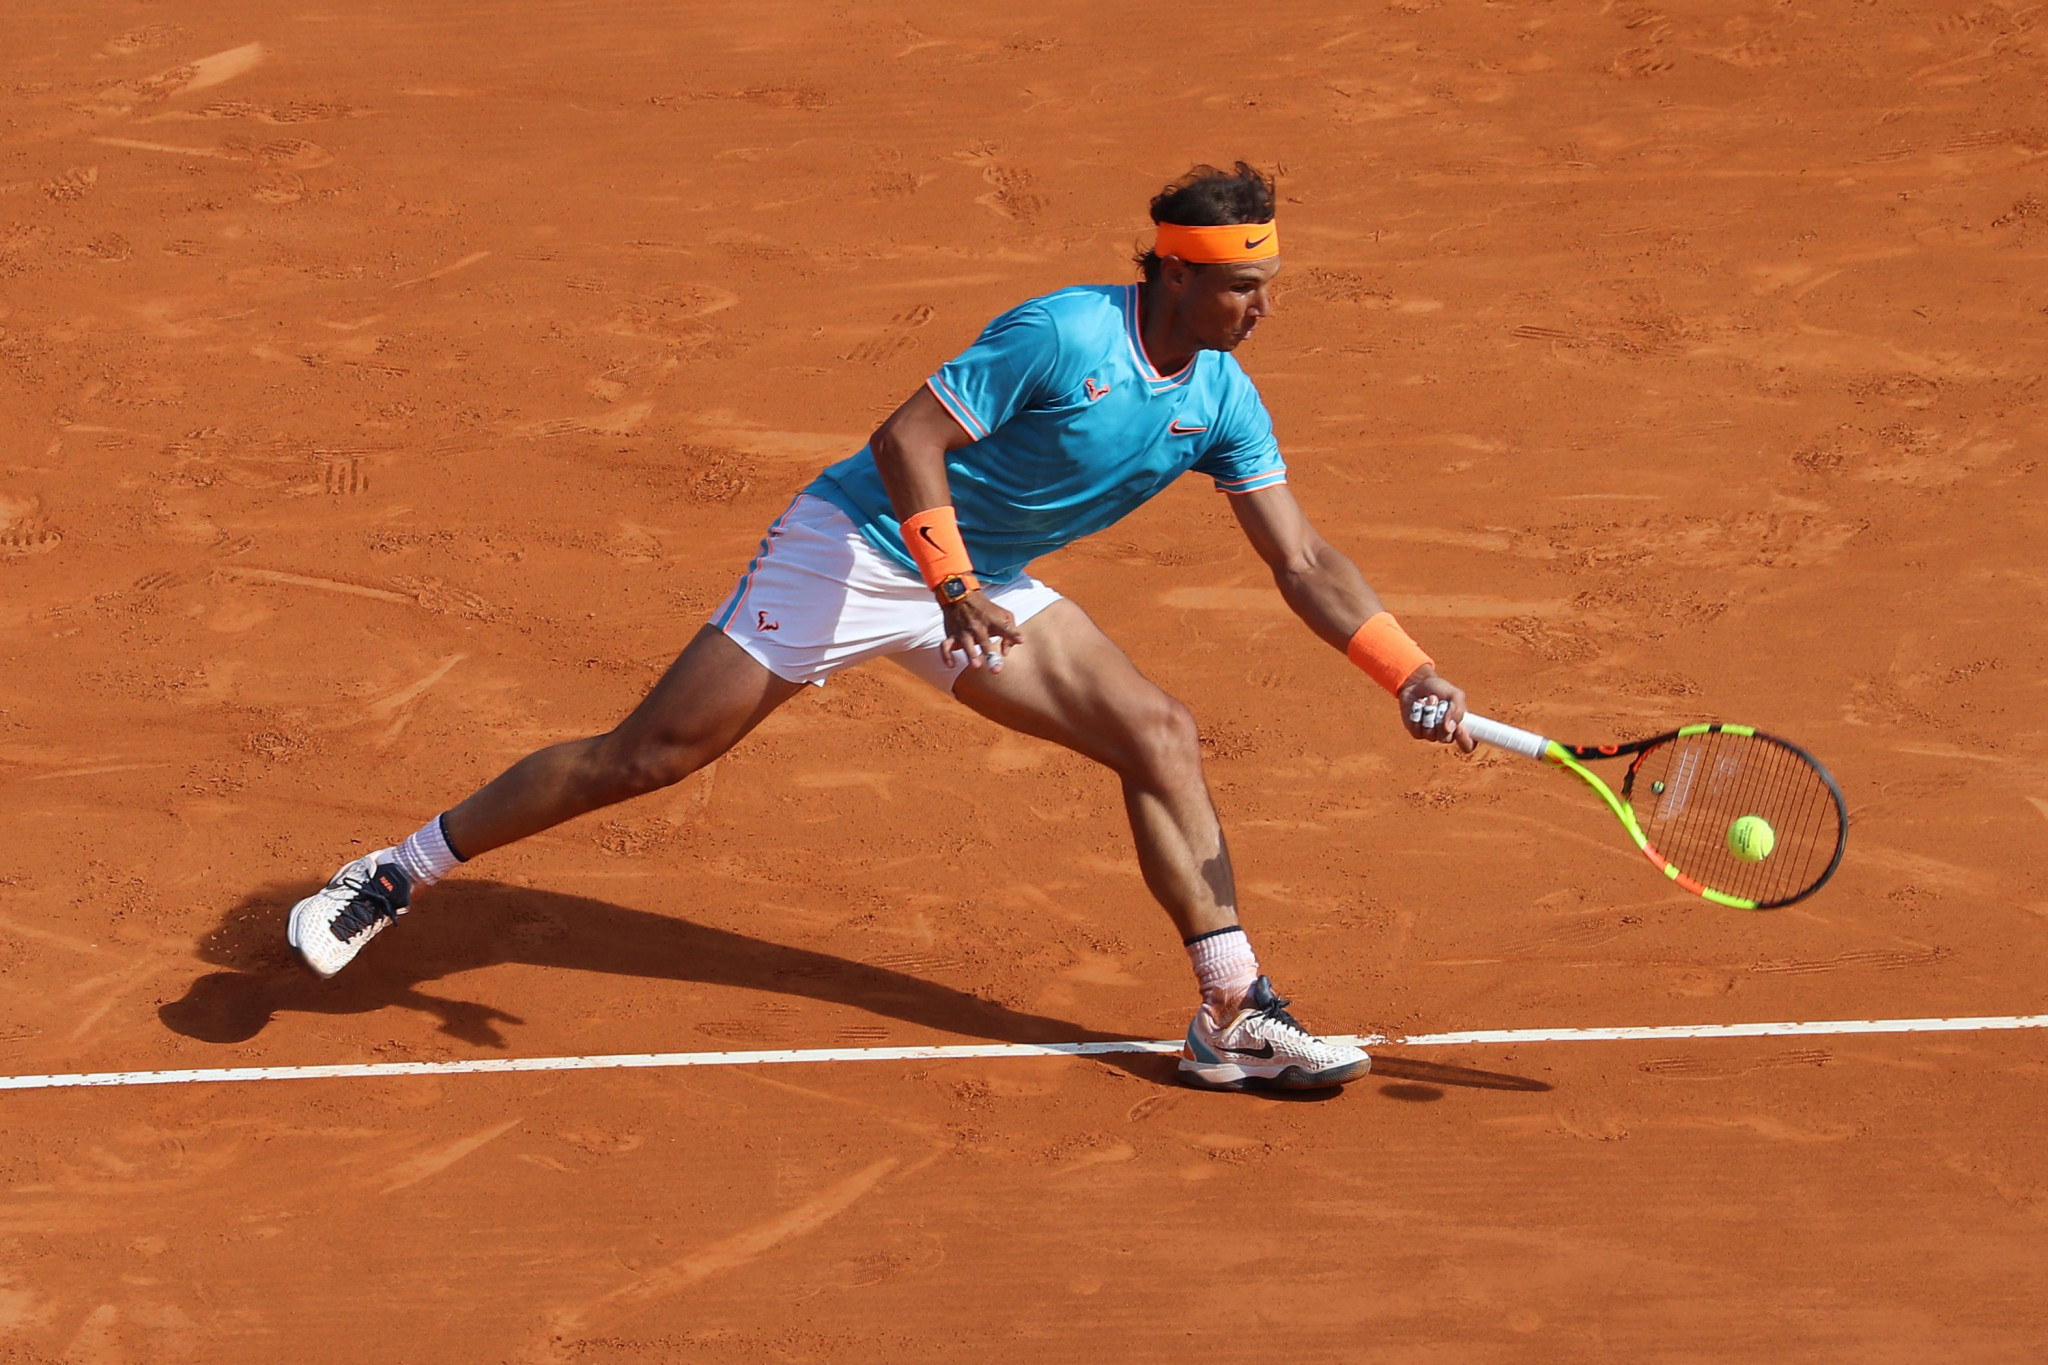 Spain's Rafael Nadal defeated Bulgaria's Grigor Dimitrov to reach the Monte-Carlo Masters quarter-finals ©Getty Images